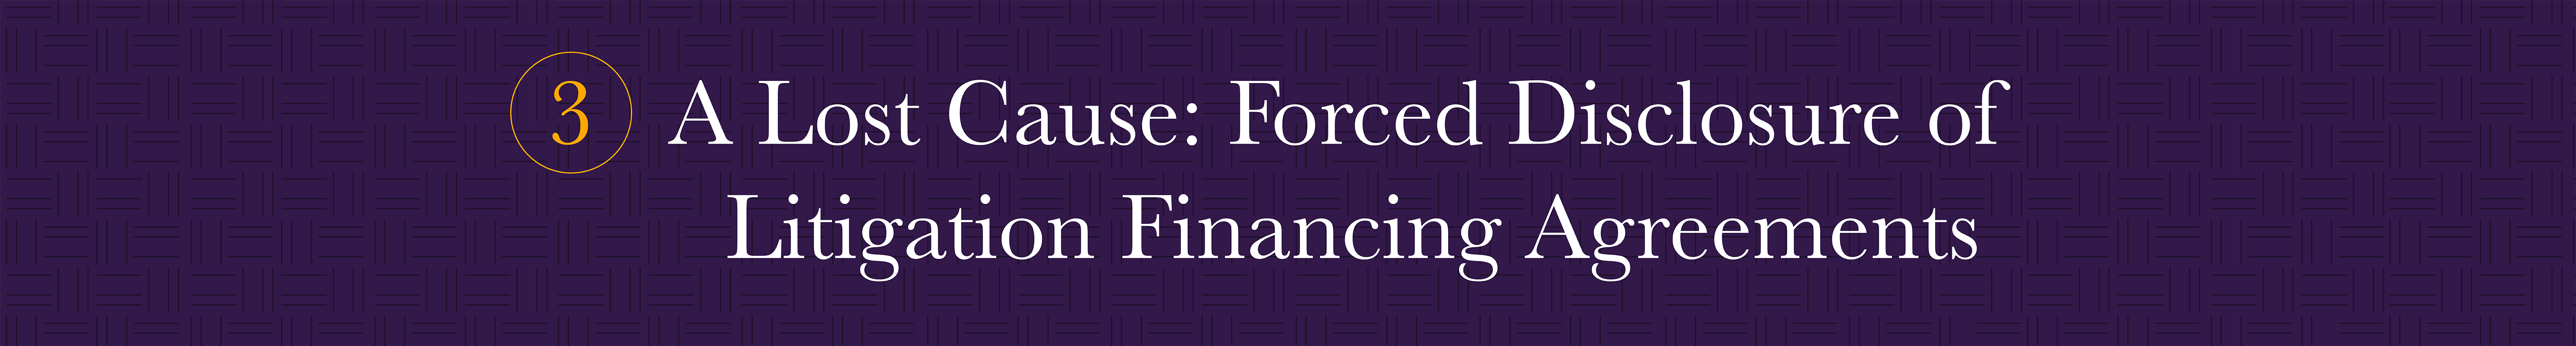 A-lost-cause-forced-disclosure-of-litigation-financing-agreements